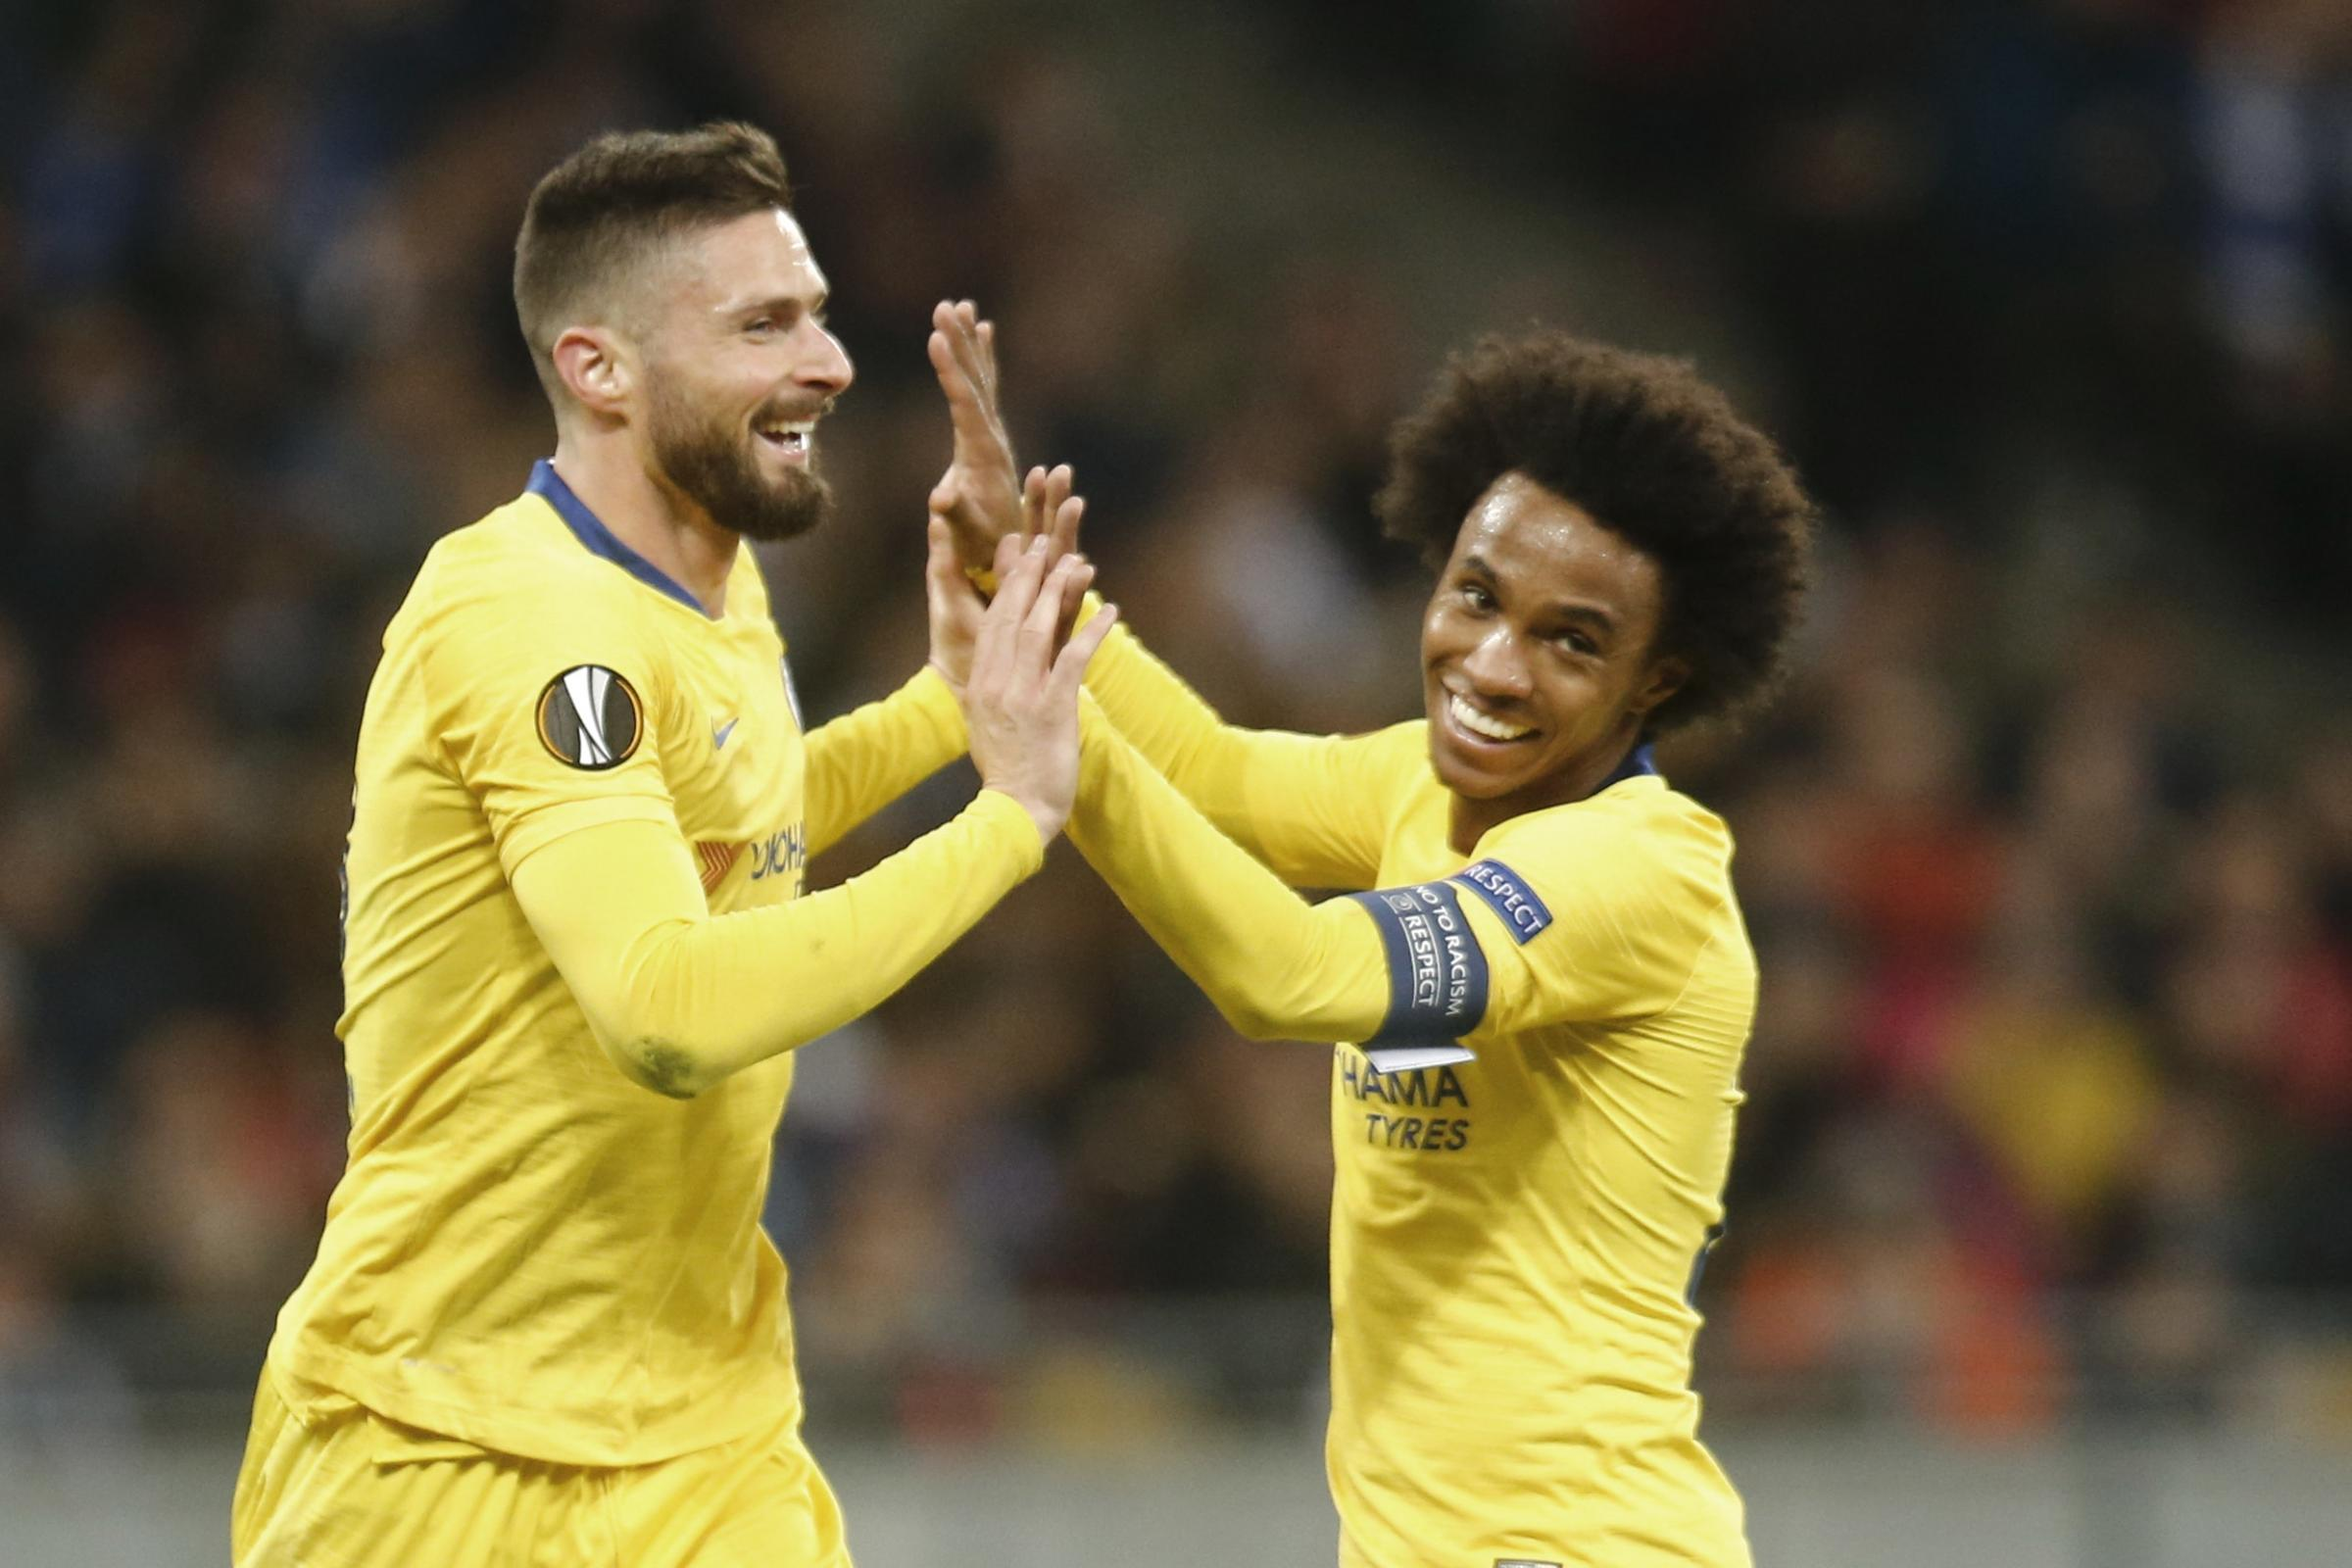 Chelsea's Olivier Giroud notched a hat-trick in Ukraine